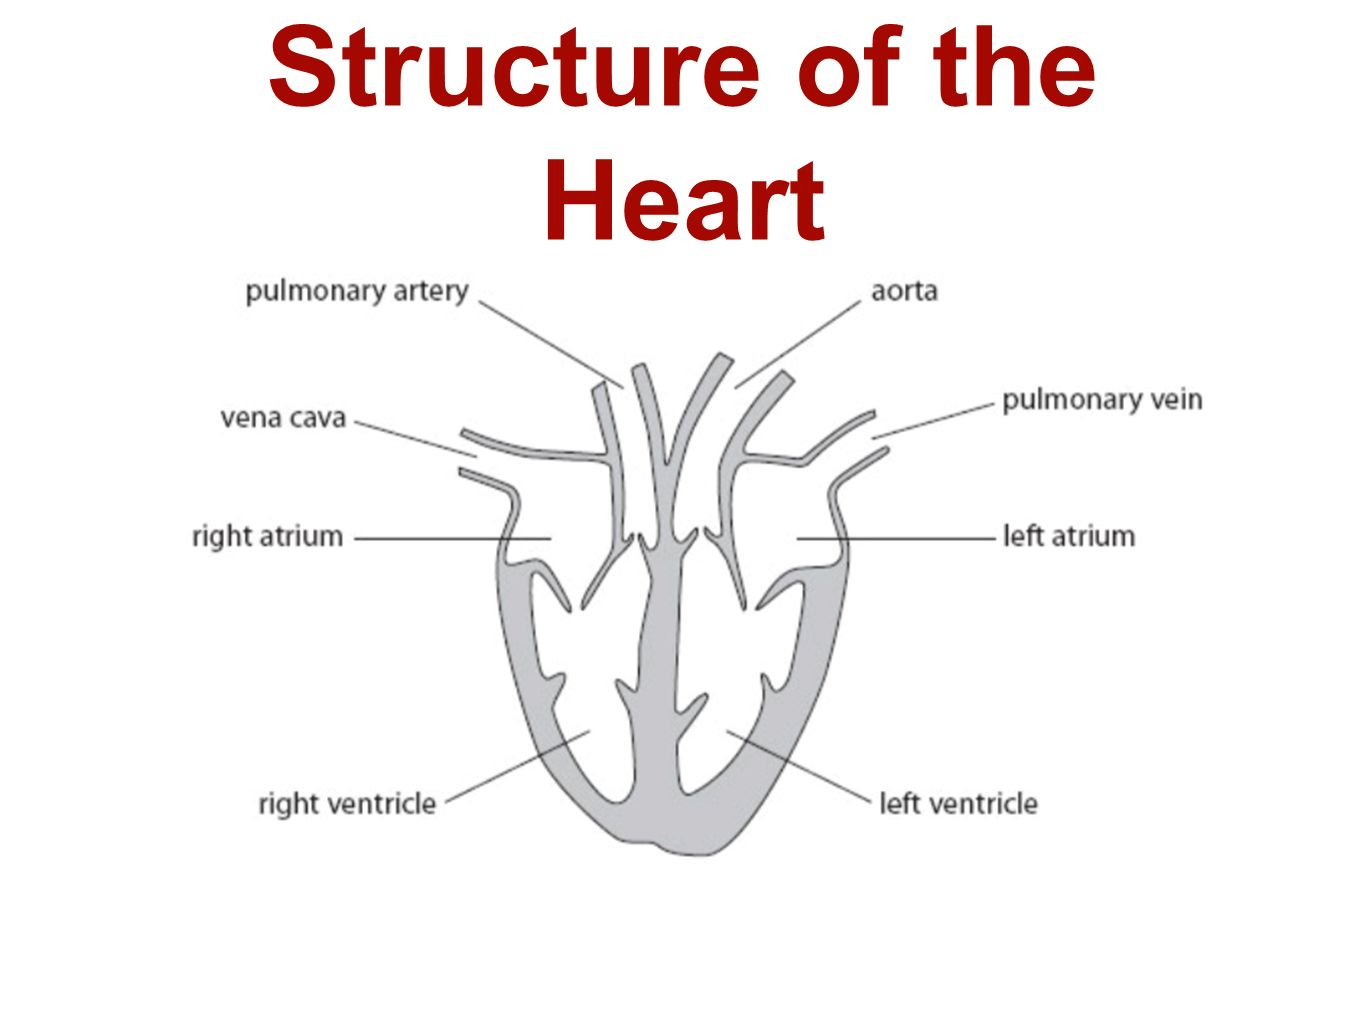 B2 Topic 3 Starter Stick In The Heart Diagram